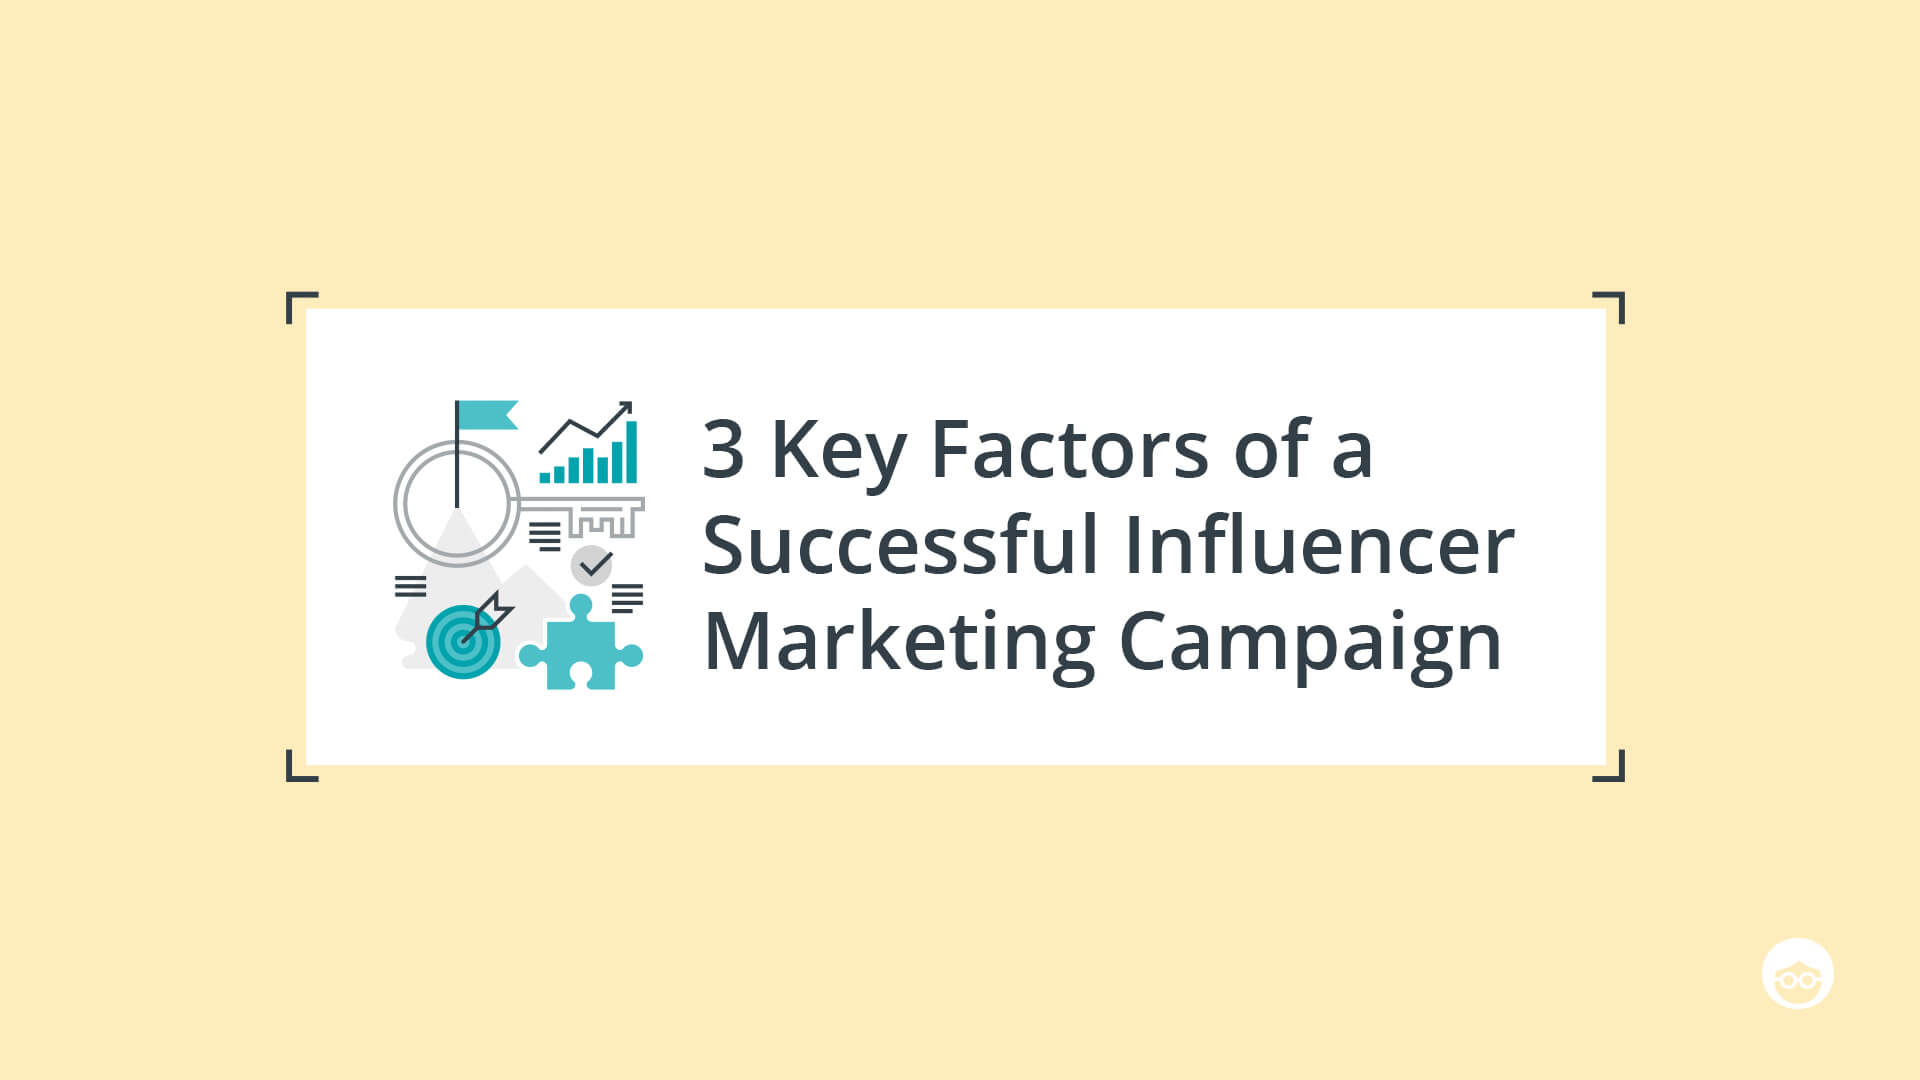 Influencer marketing factors